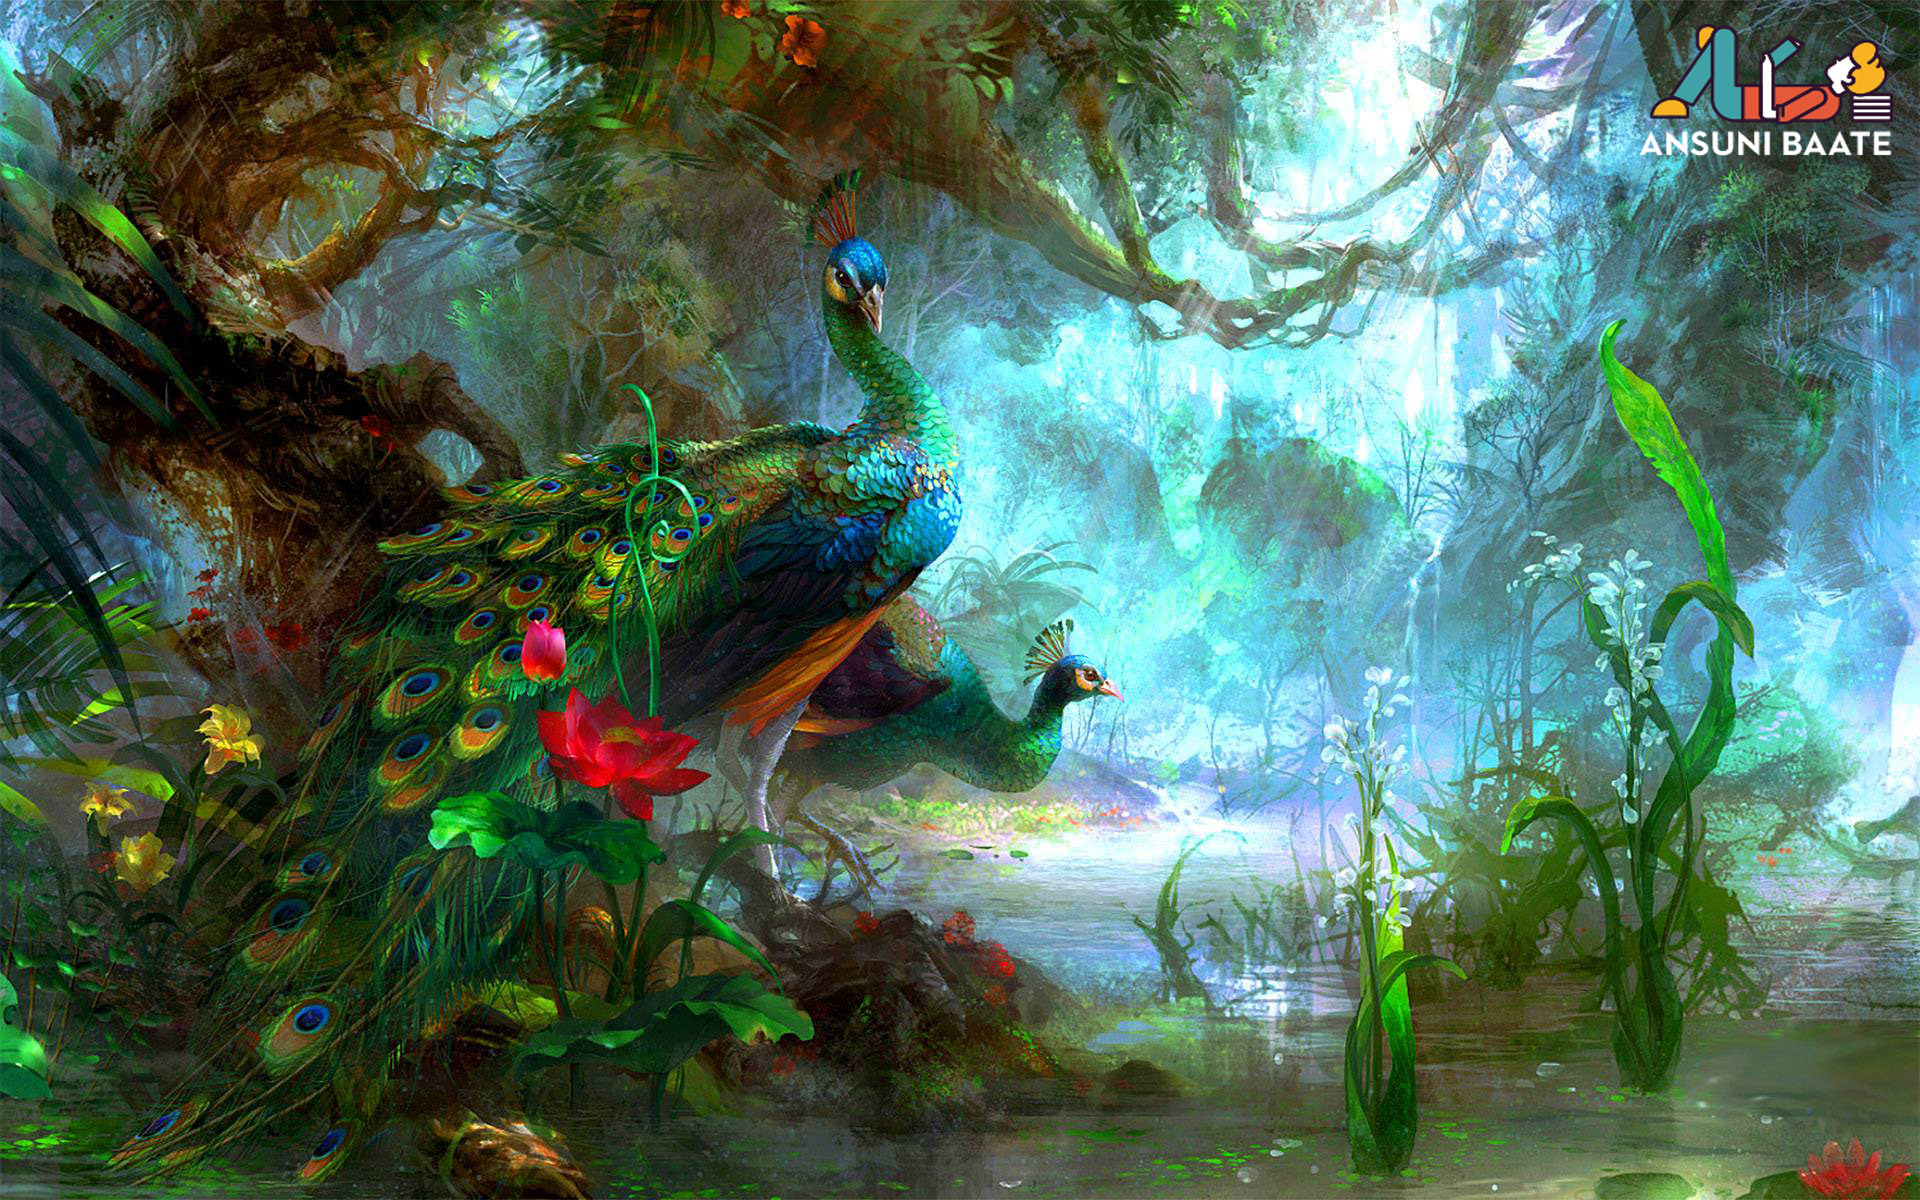 Peacock Images Photo Pictures Hd Wallpaper Free Download Ansunibaate